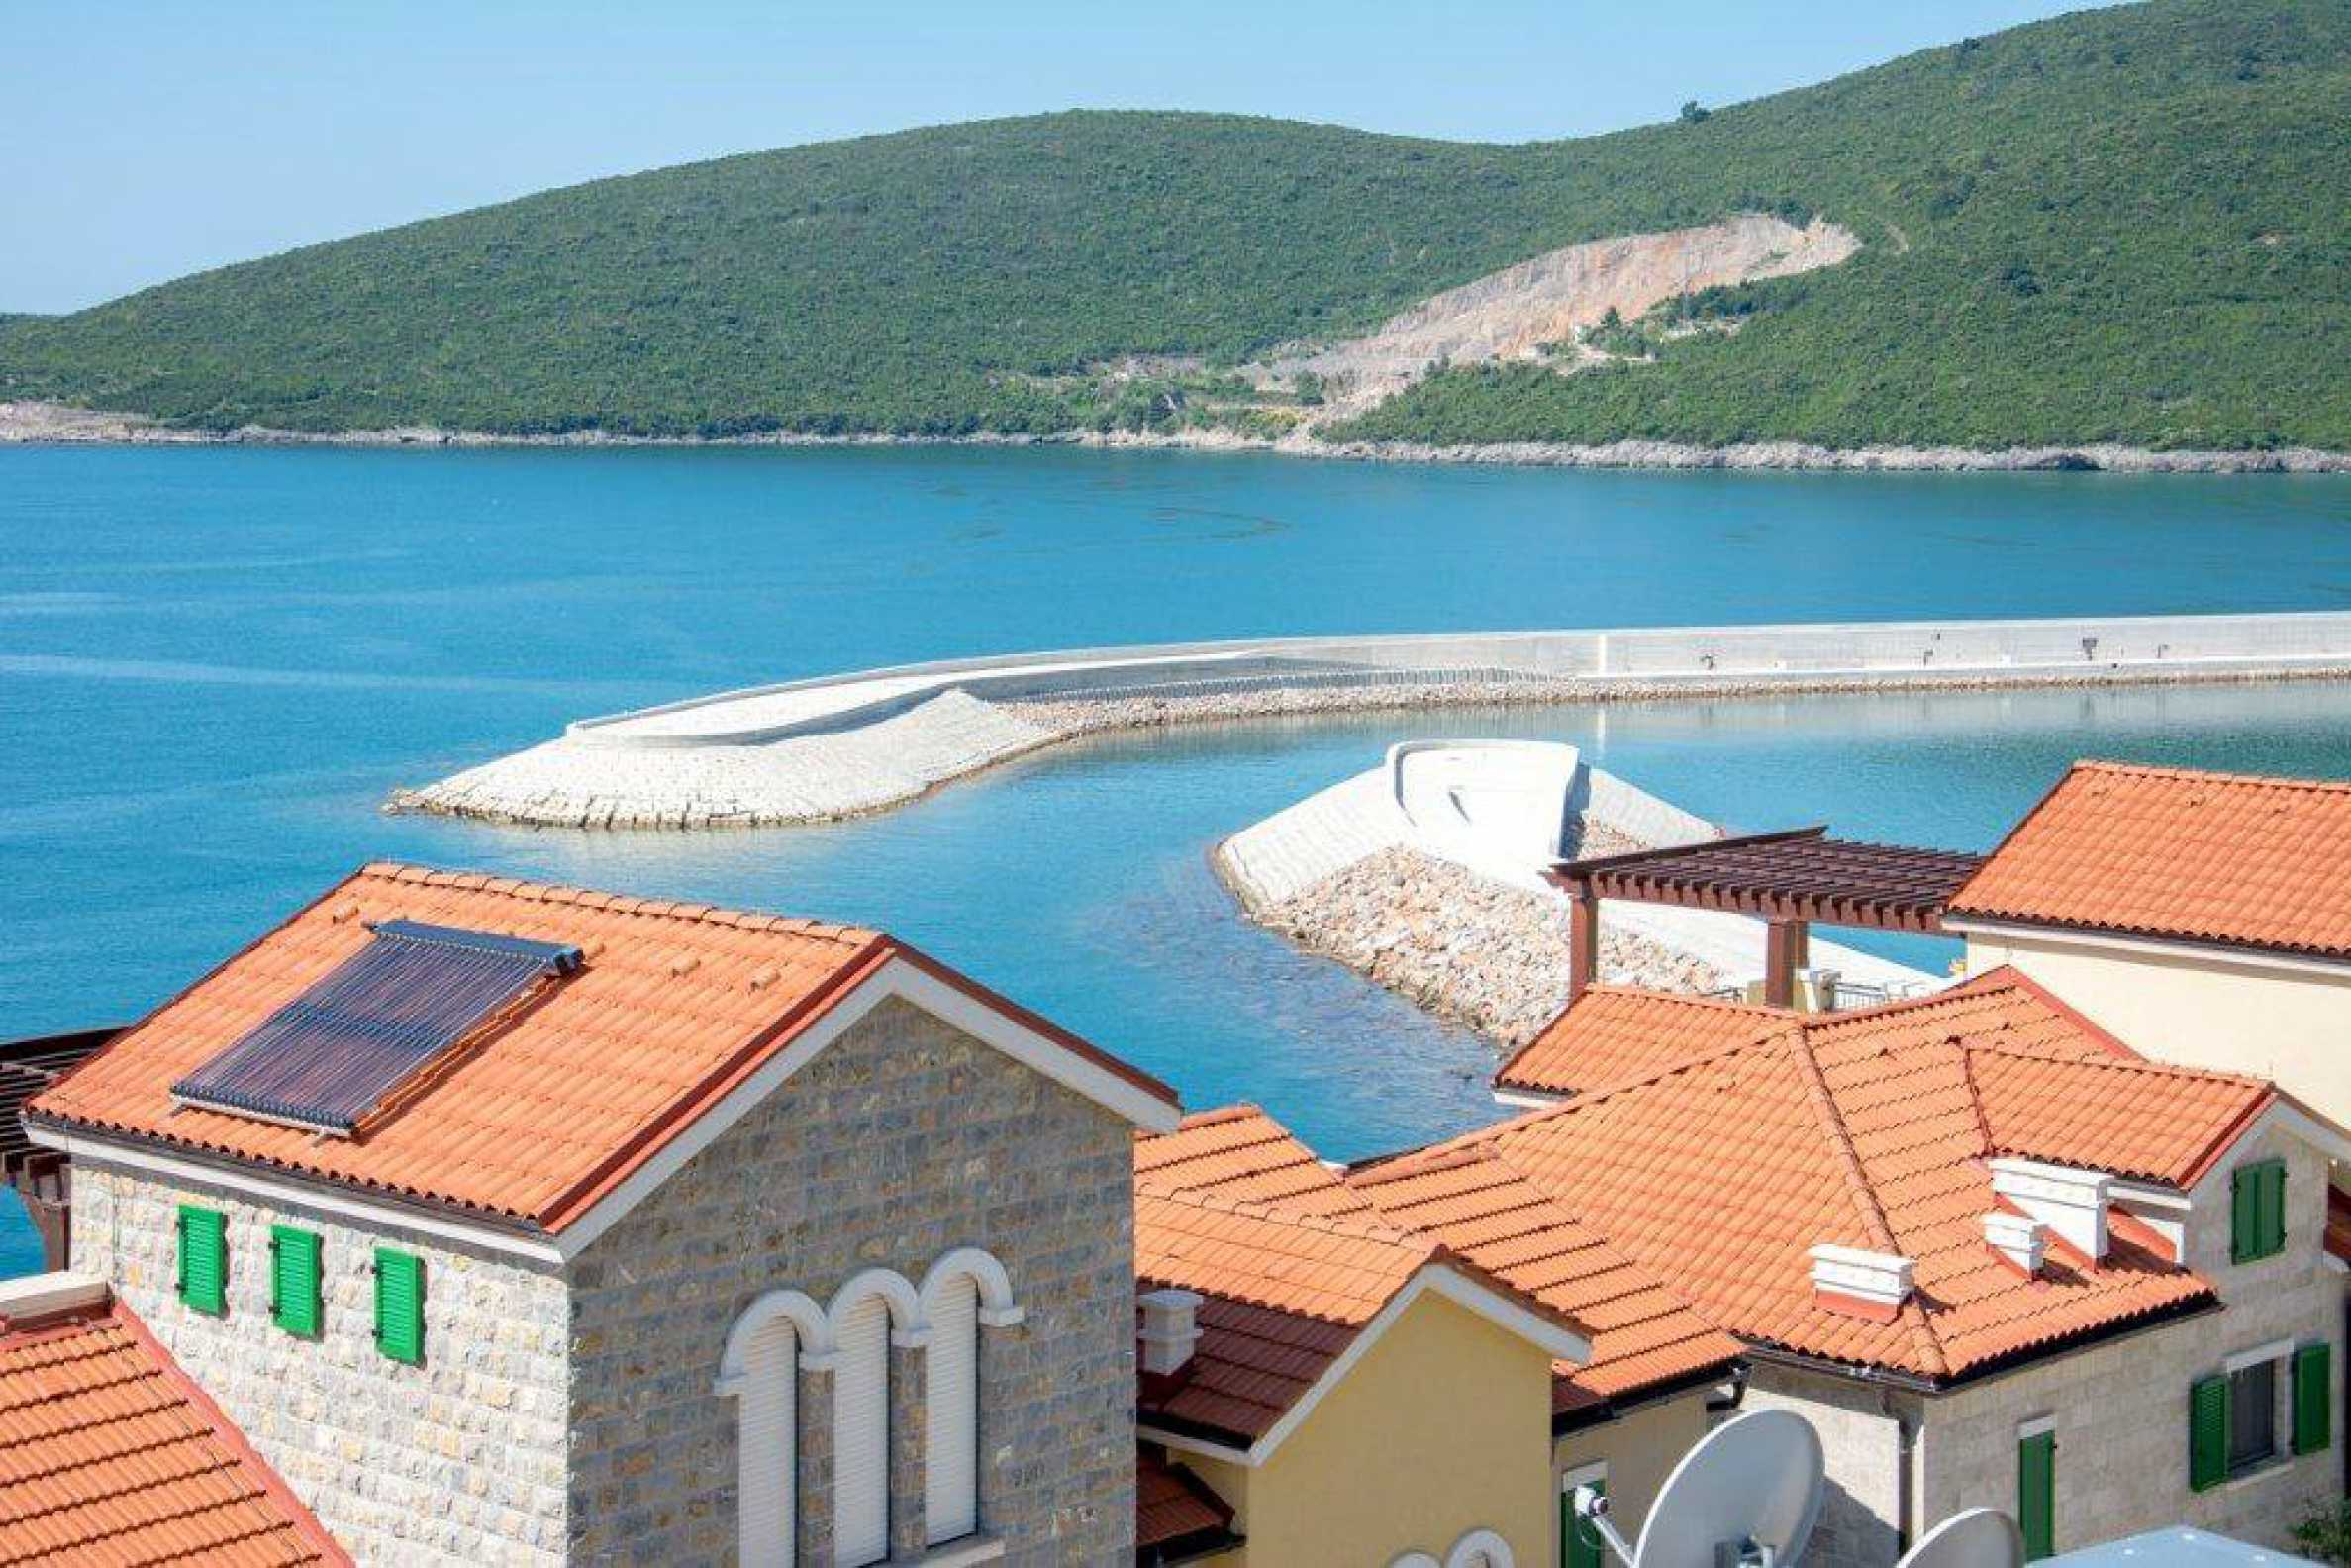 Apartments in world-class luxury resort on the Adriatic coast2 - Stonehard